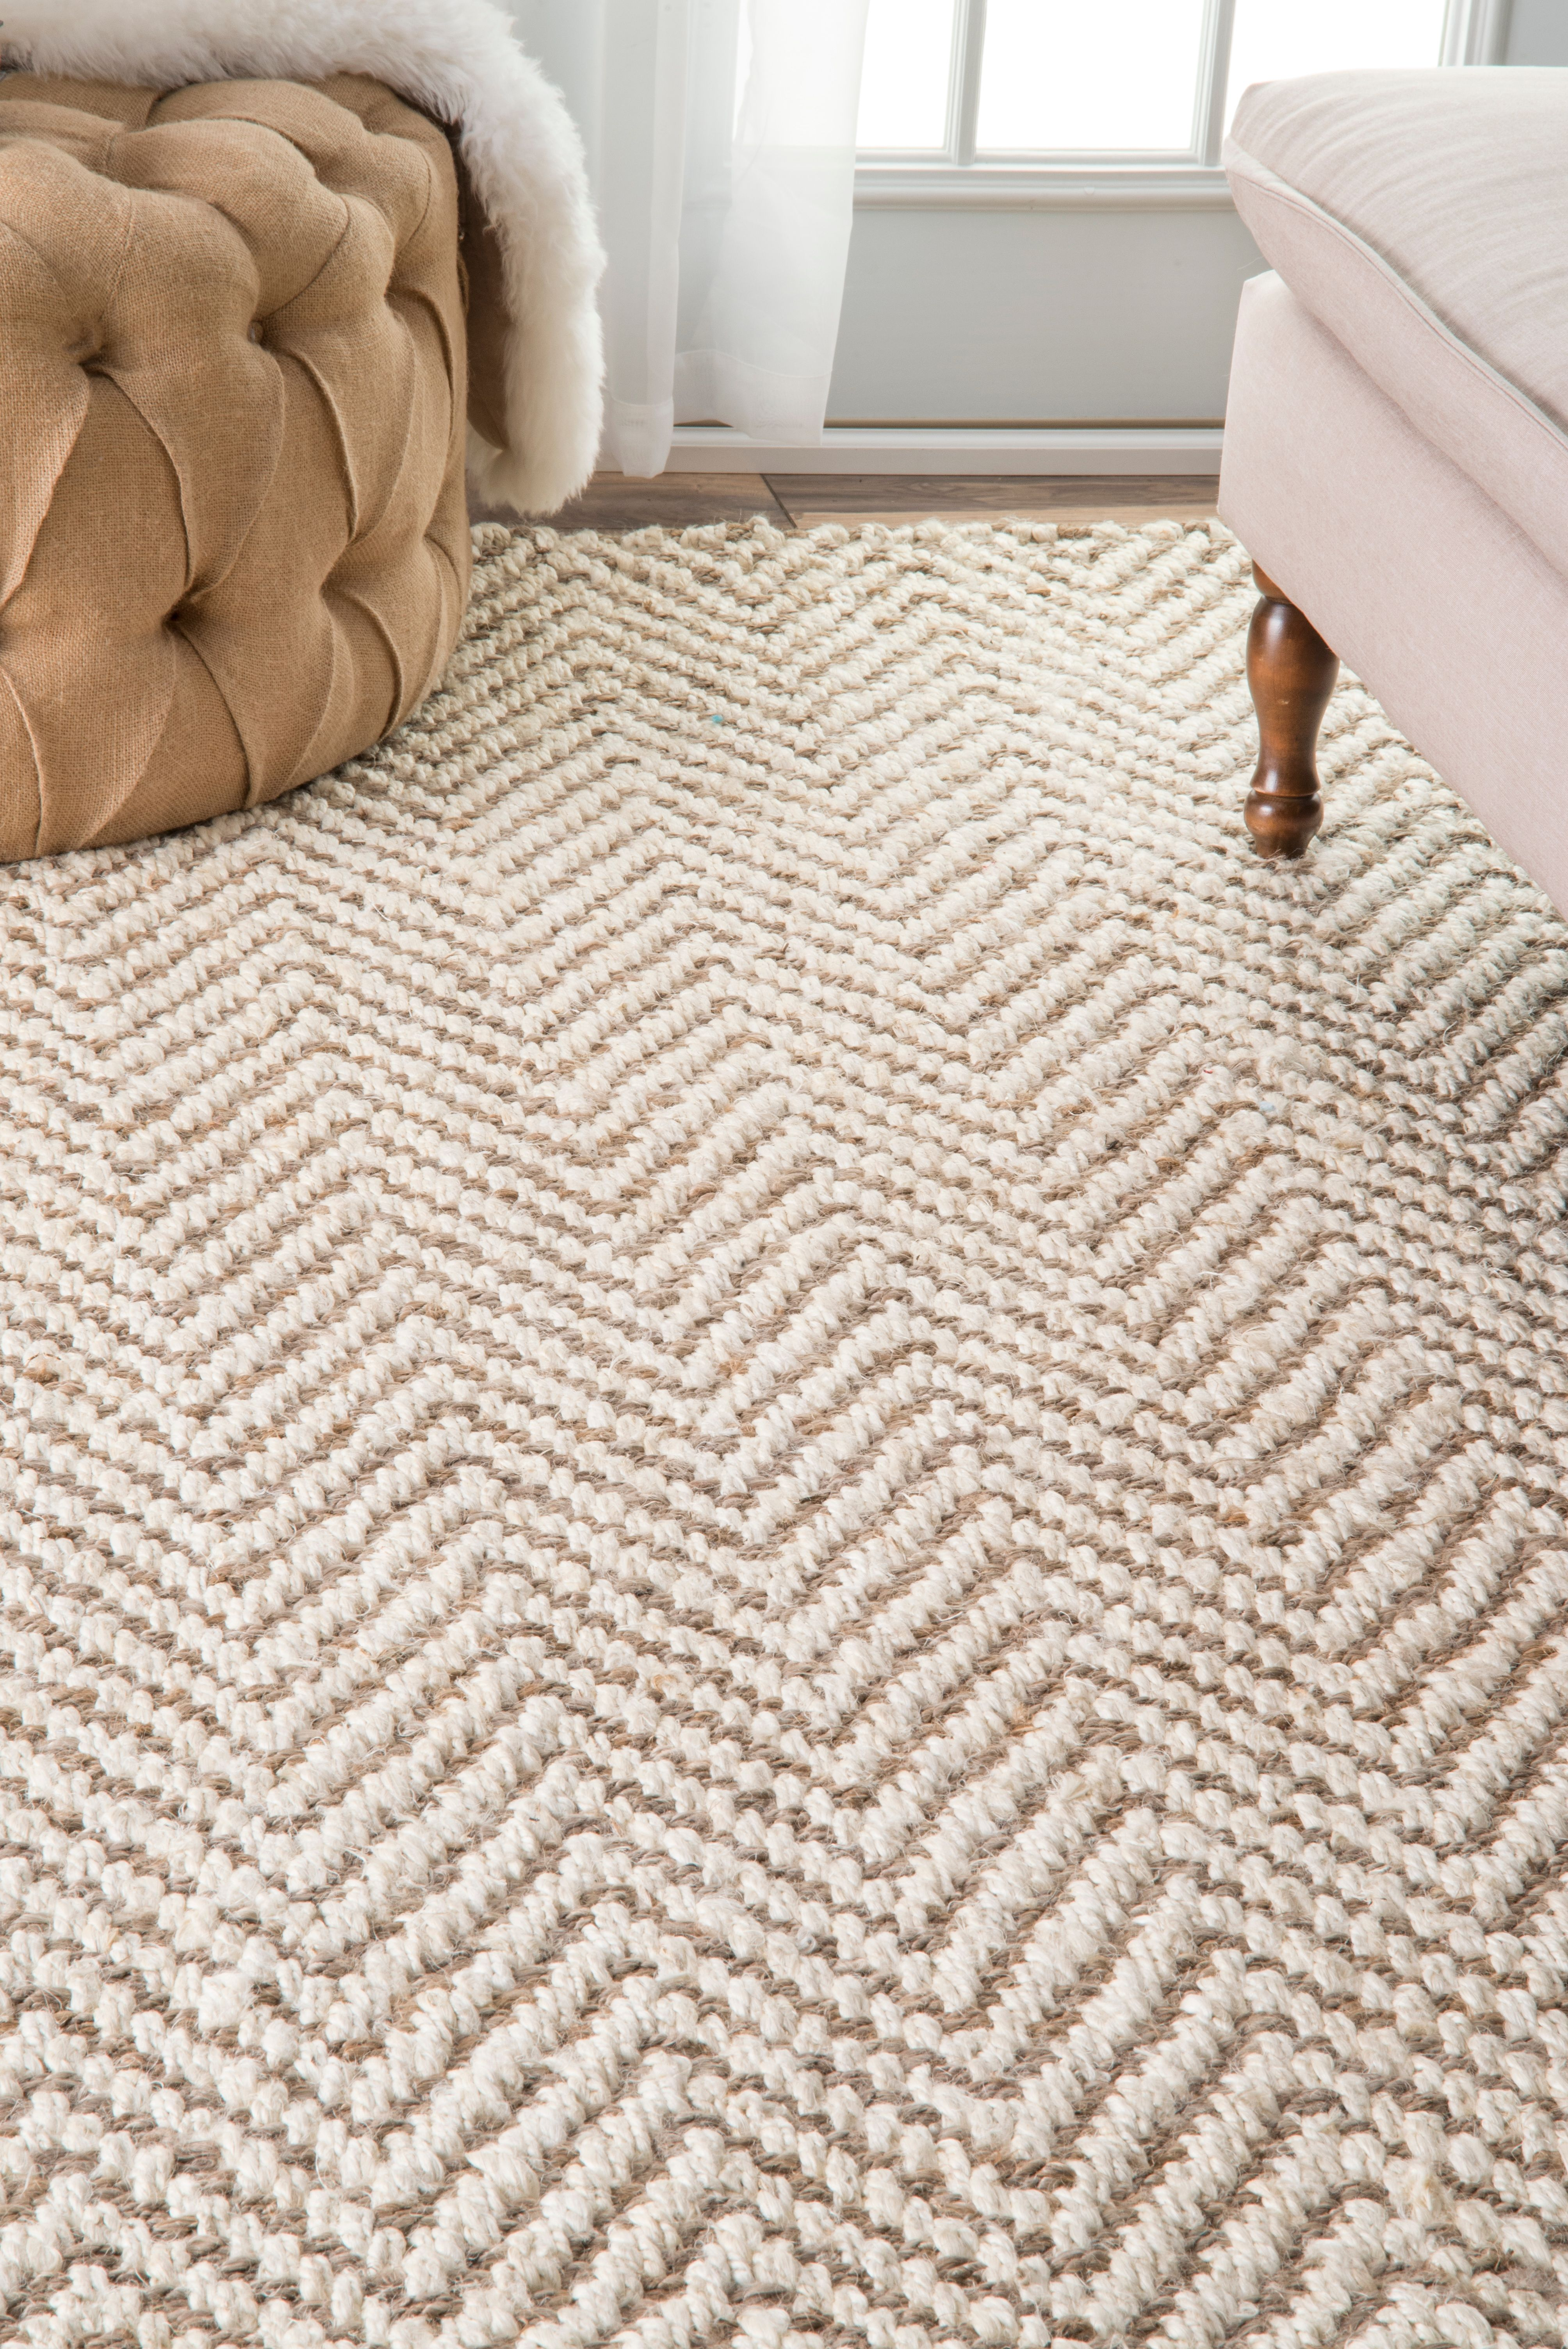 Handwoven Jute Jagged Chevron Rug Area Rugs At Usa From Contemporary To